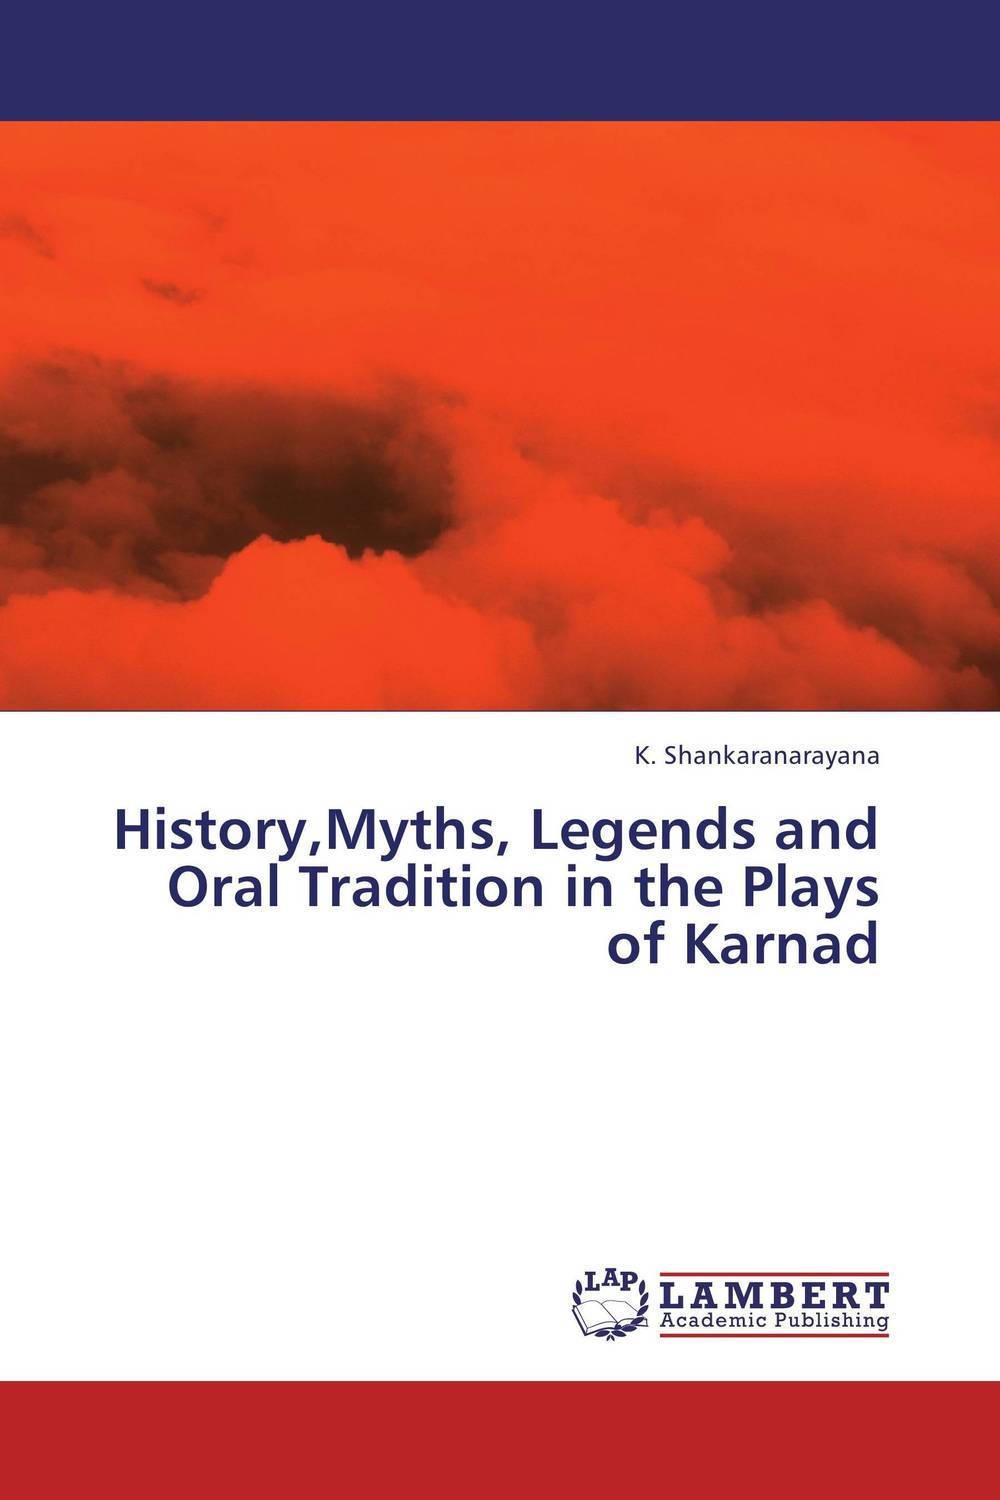 History,Myths, Legends and Oral Tradition in the Plays of Karnad the major plays